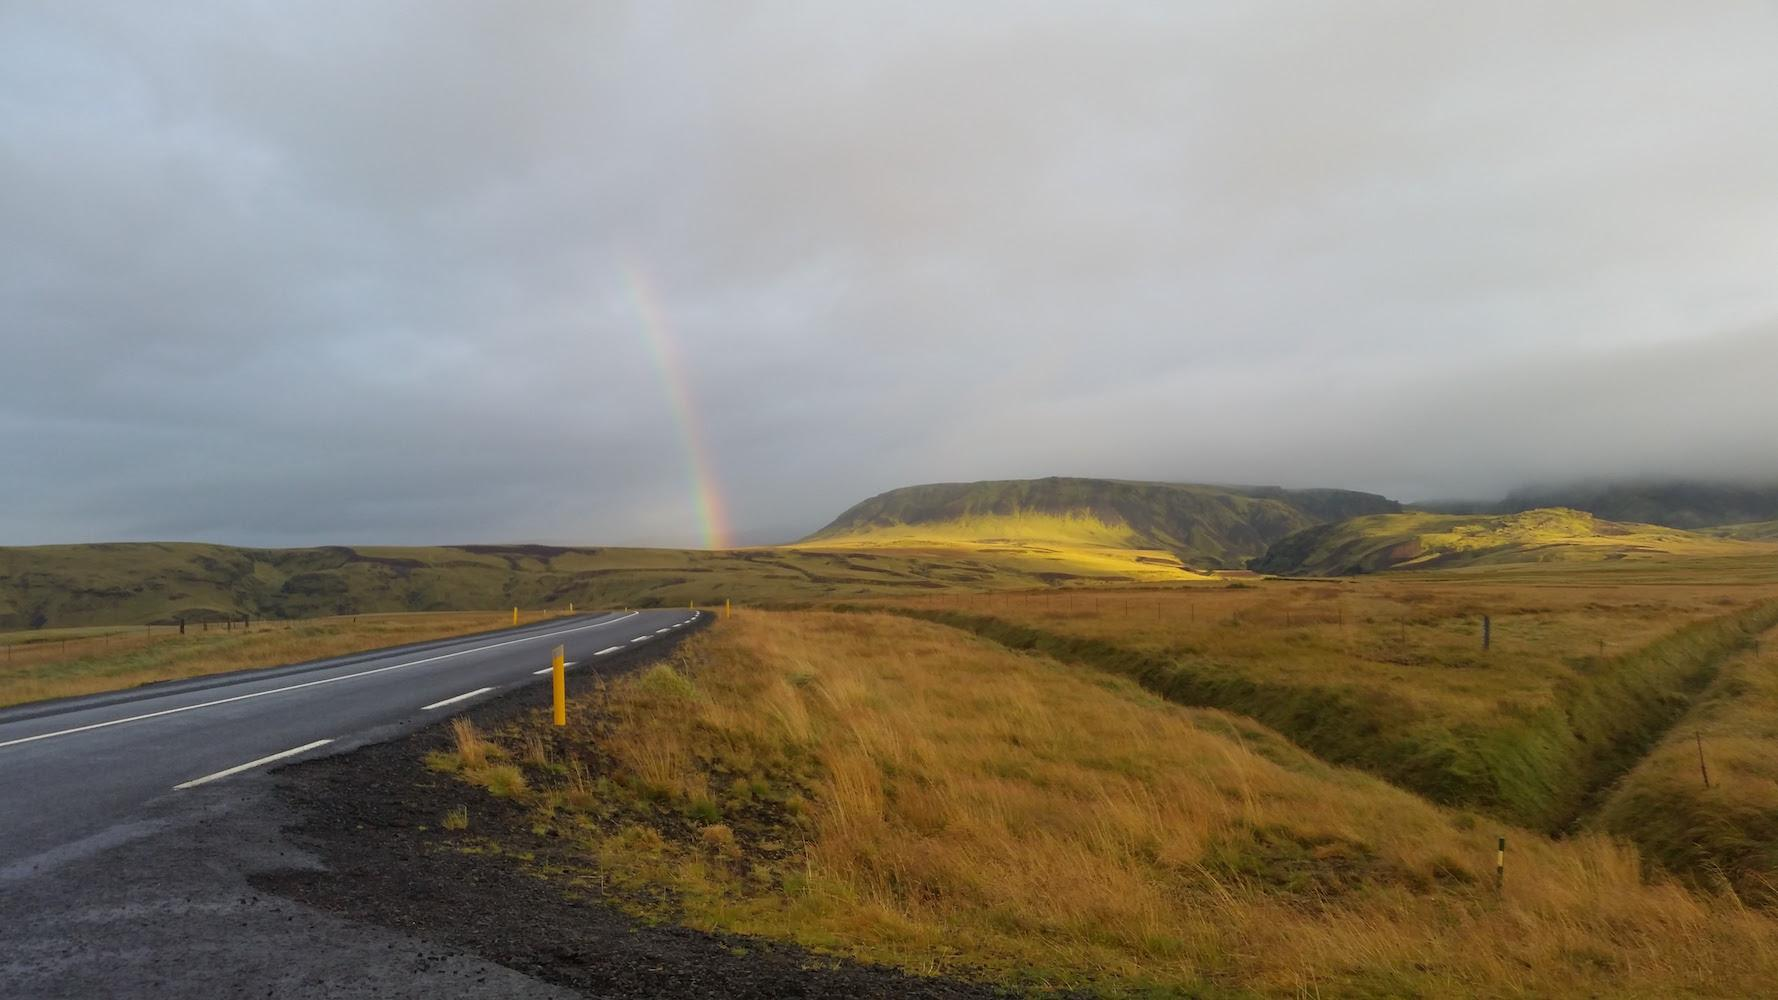 On May 10, 2018, WOW airlines will take its inaugural flight from CVG to Iceland. One-way tickets to Keflavik will start at the low price of $99. This photo from Iceland was taken during Samantha Conover's honeymoon in August/September 2016. / Image: Samantha Conover // Published: 1.10.18